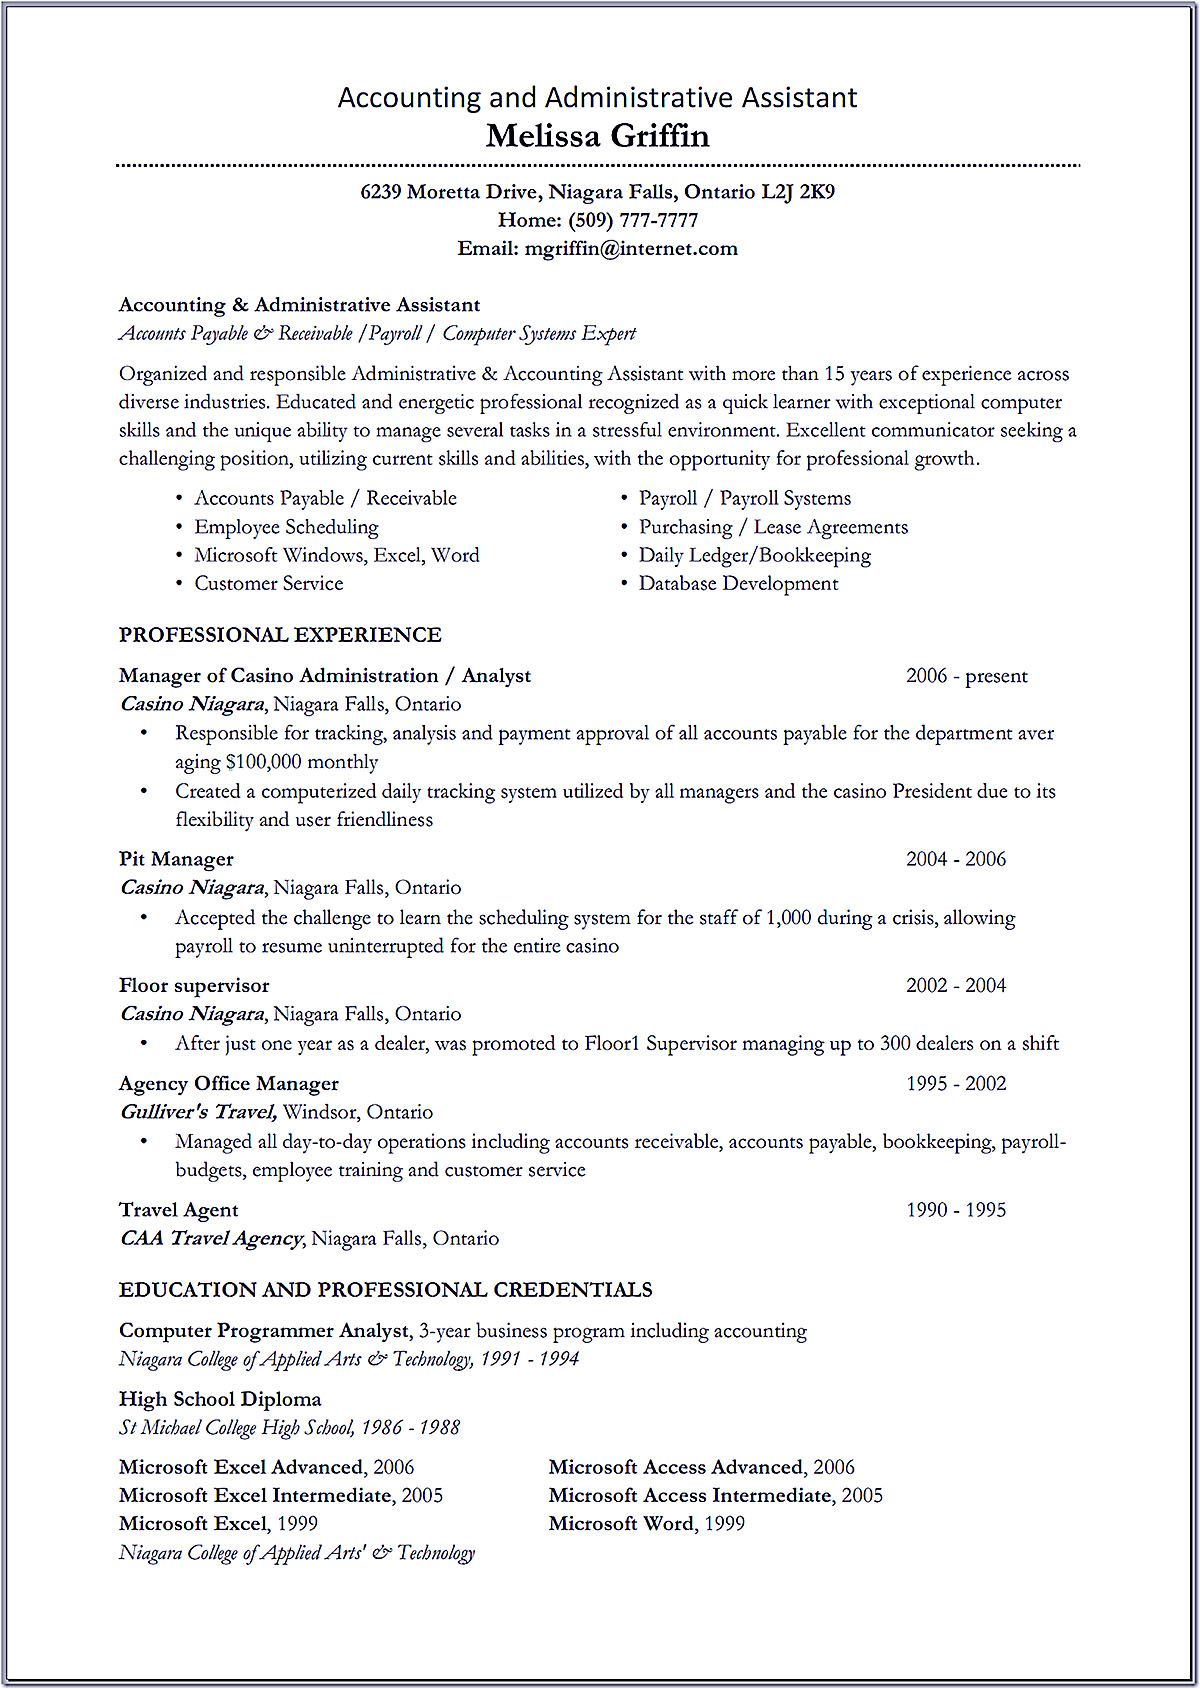 accounting assistant resume sample whether or not accounting assistant resume can be successful depending on how - Accounting Assistant Resume Sample